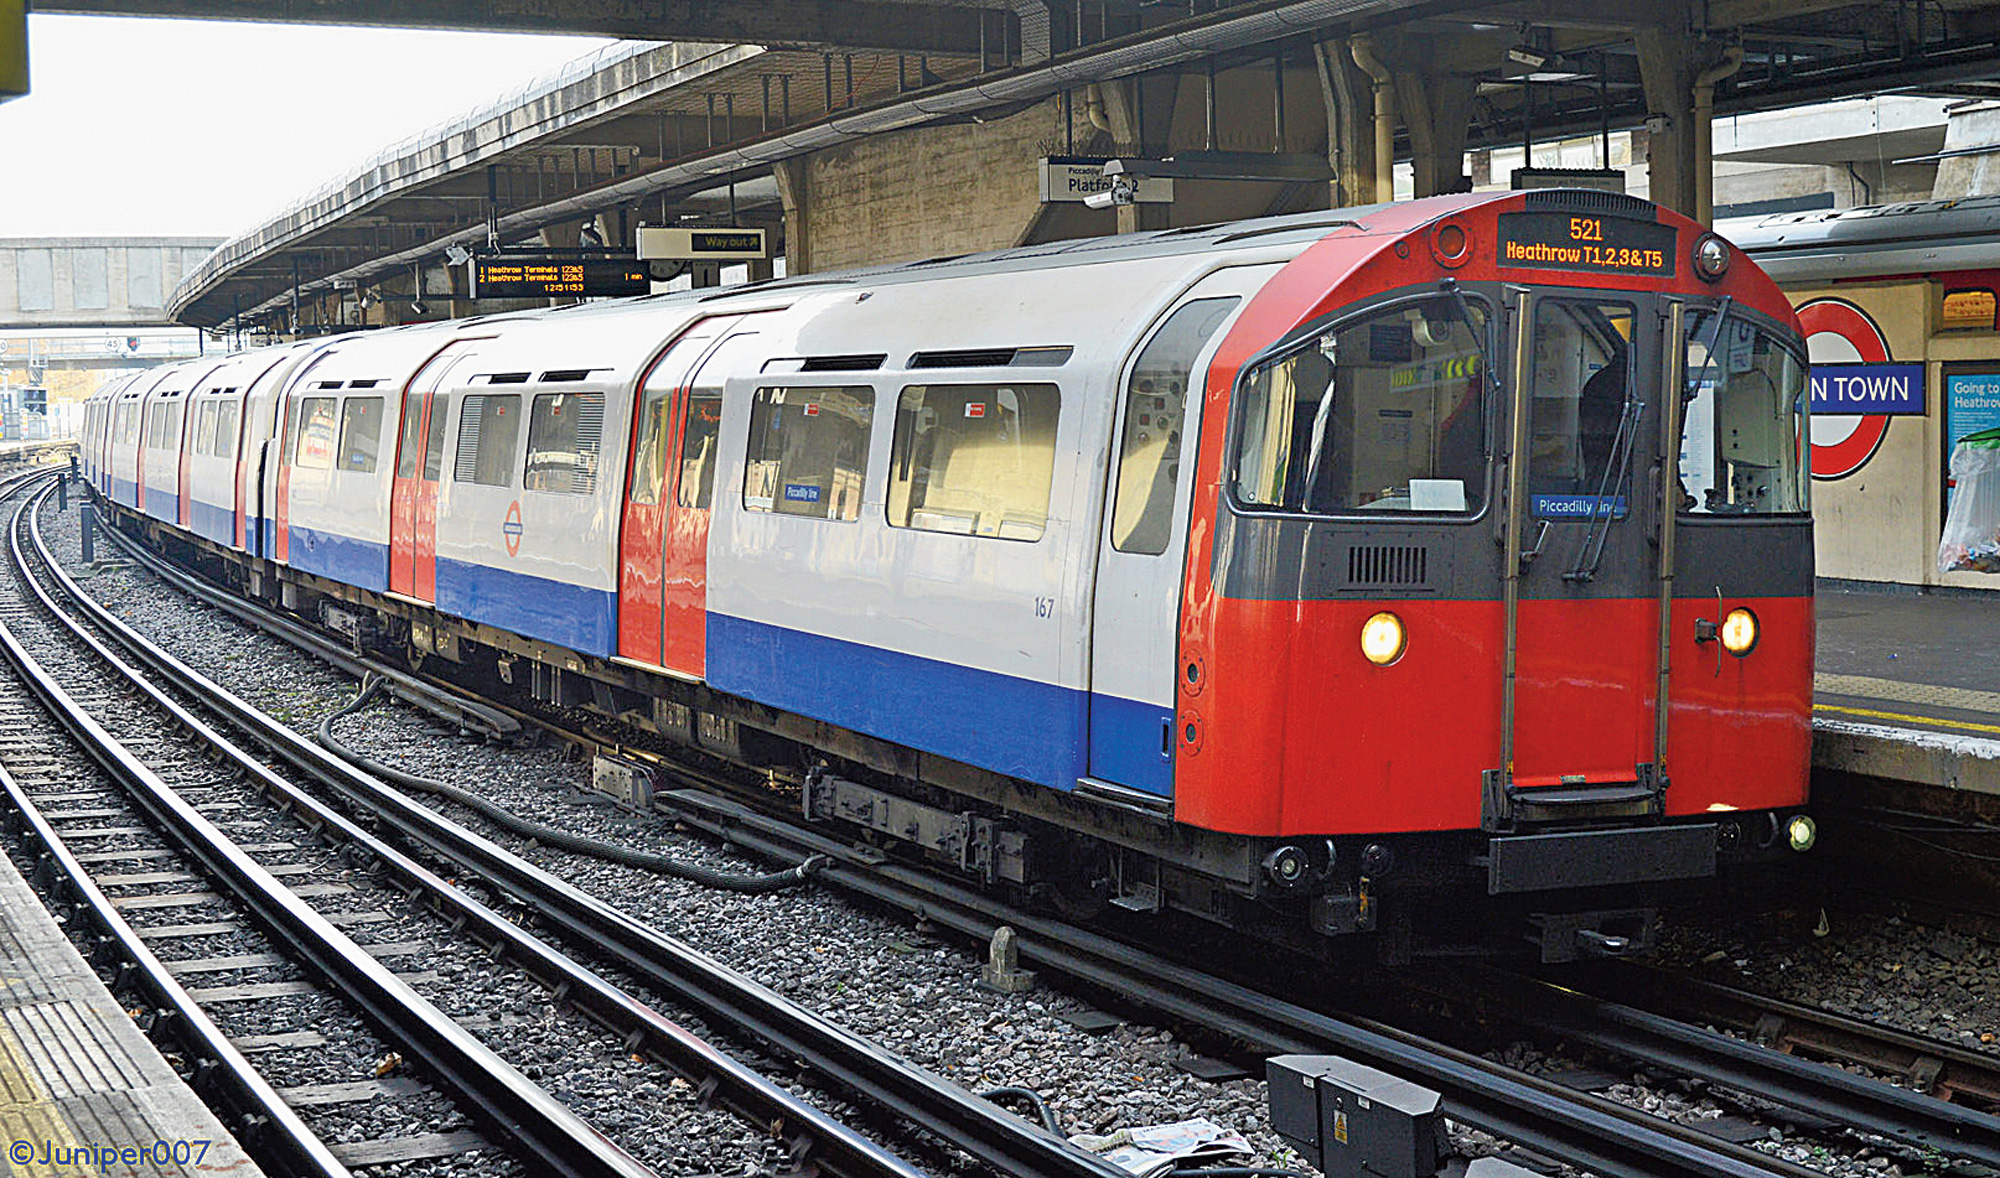 A train runs on the Piccadilly line of the London Underground, the world's oldest Metro system.